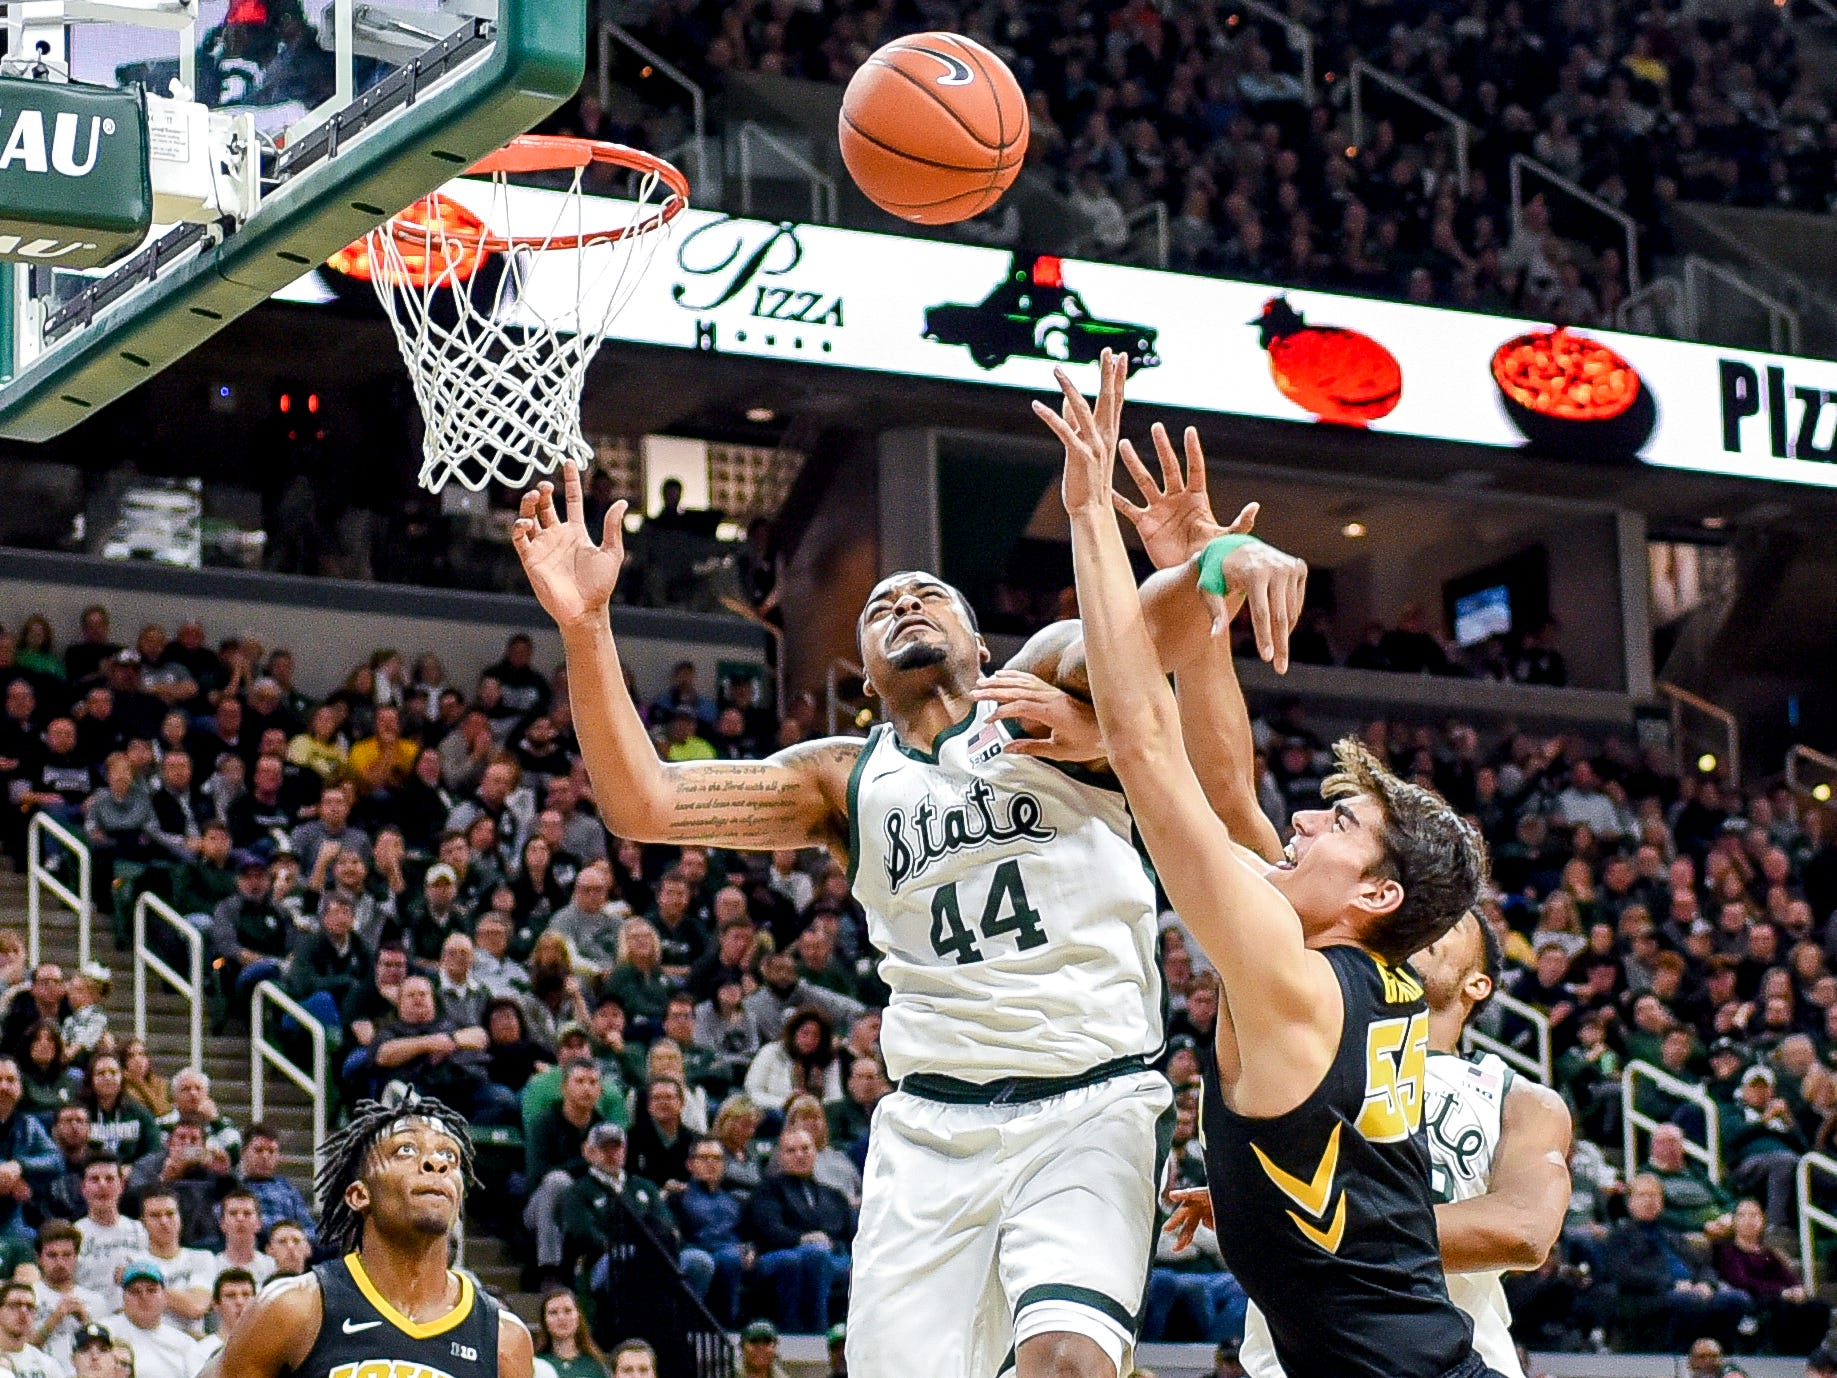 Michigan State's Nick Ward, center, blocks a shot by Iowa's Luka Garza during the second half on Monday, Dec. 3, 2018, at the Breslin Center in East Lansing. Michigan State beat Iowa 90-68.